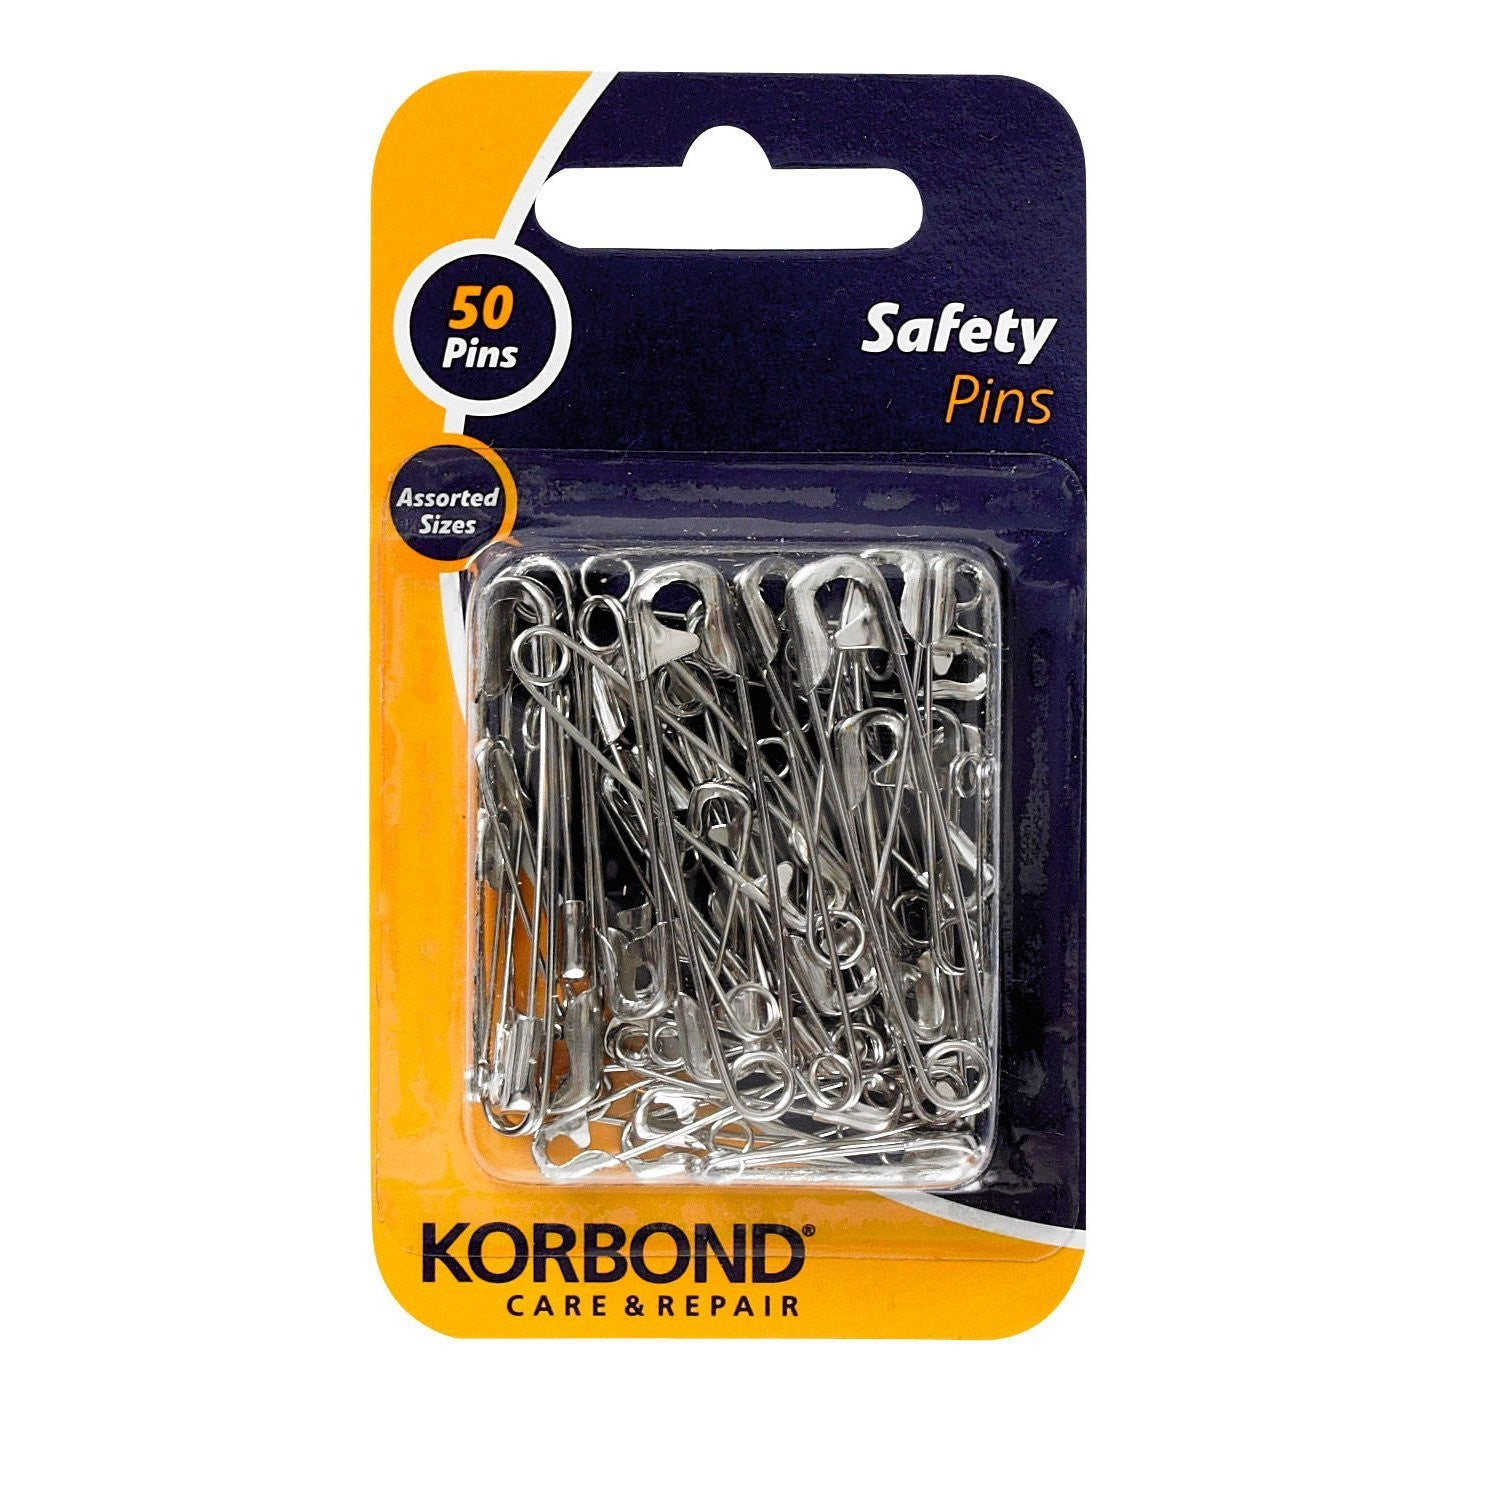 Korbond - 50 Piece Safety Pin Pack - RKL Tools & Hardware